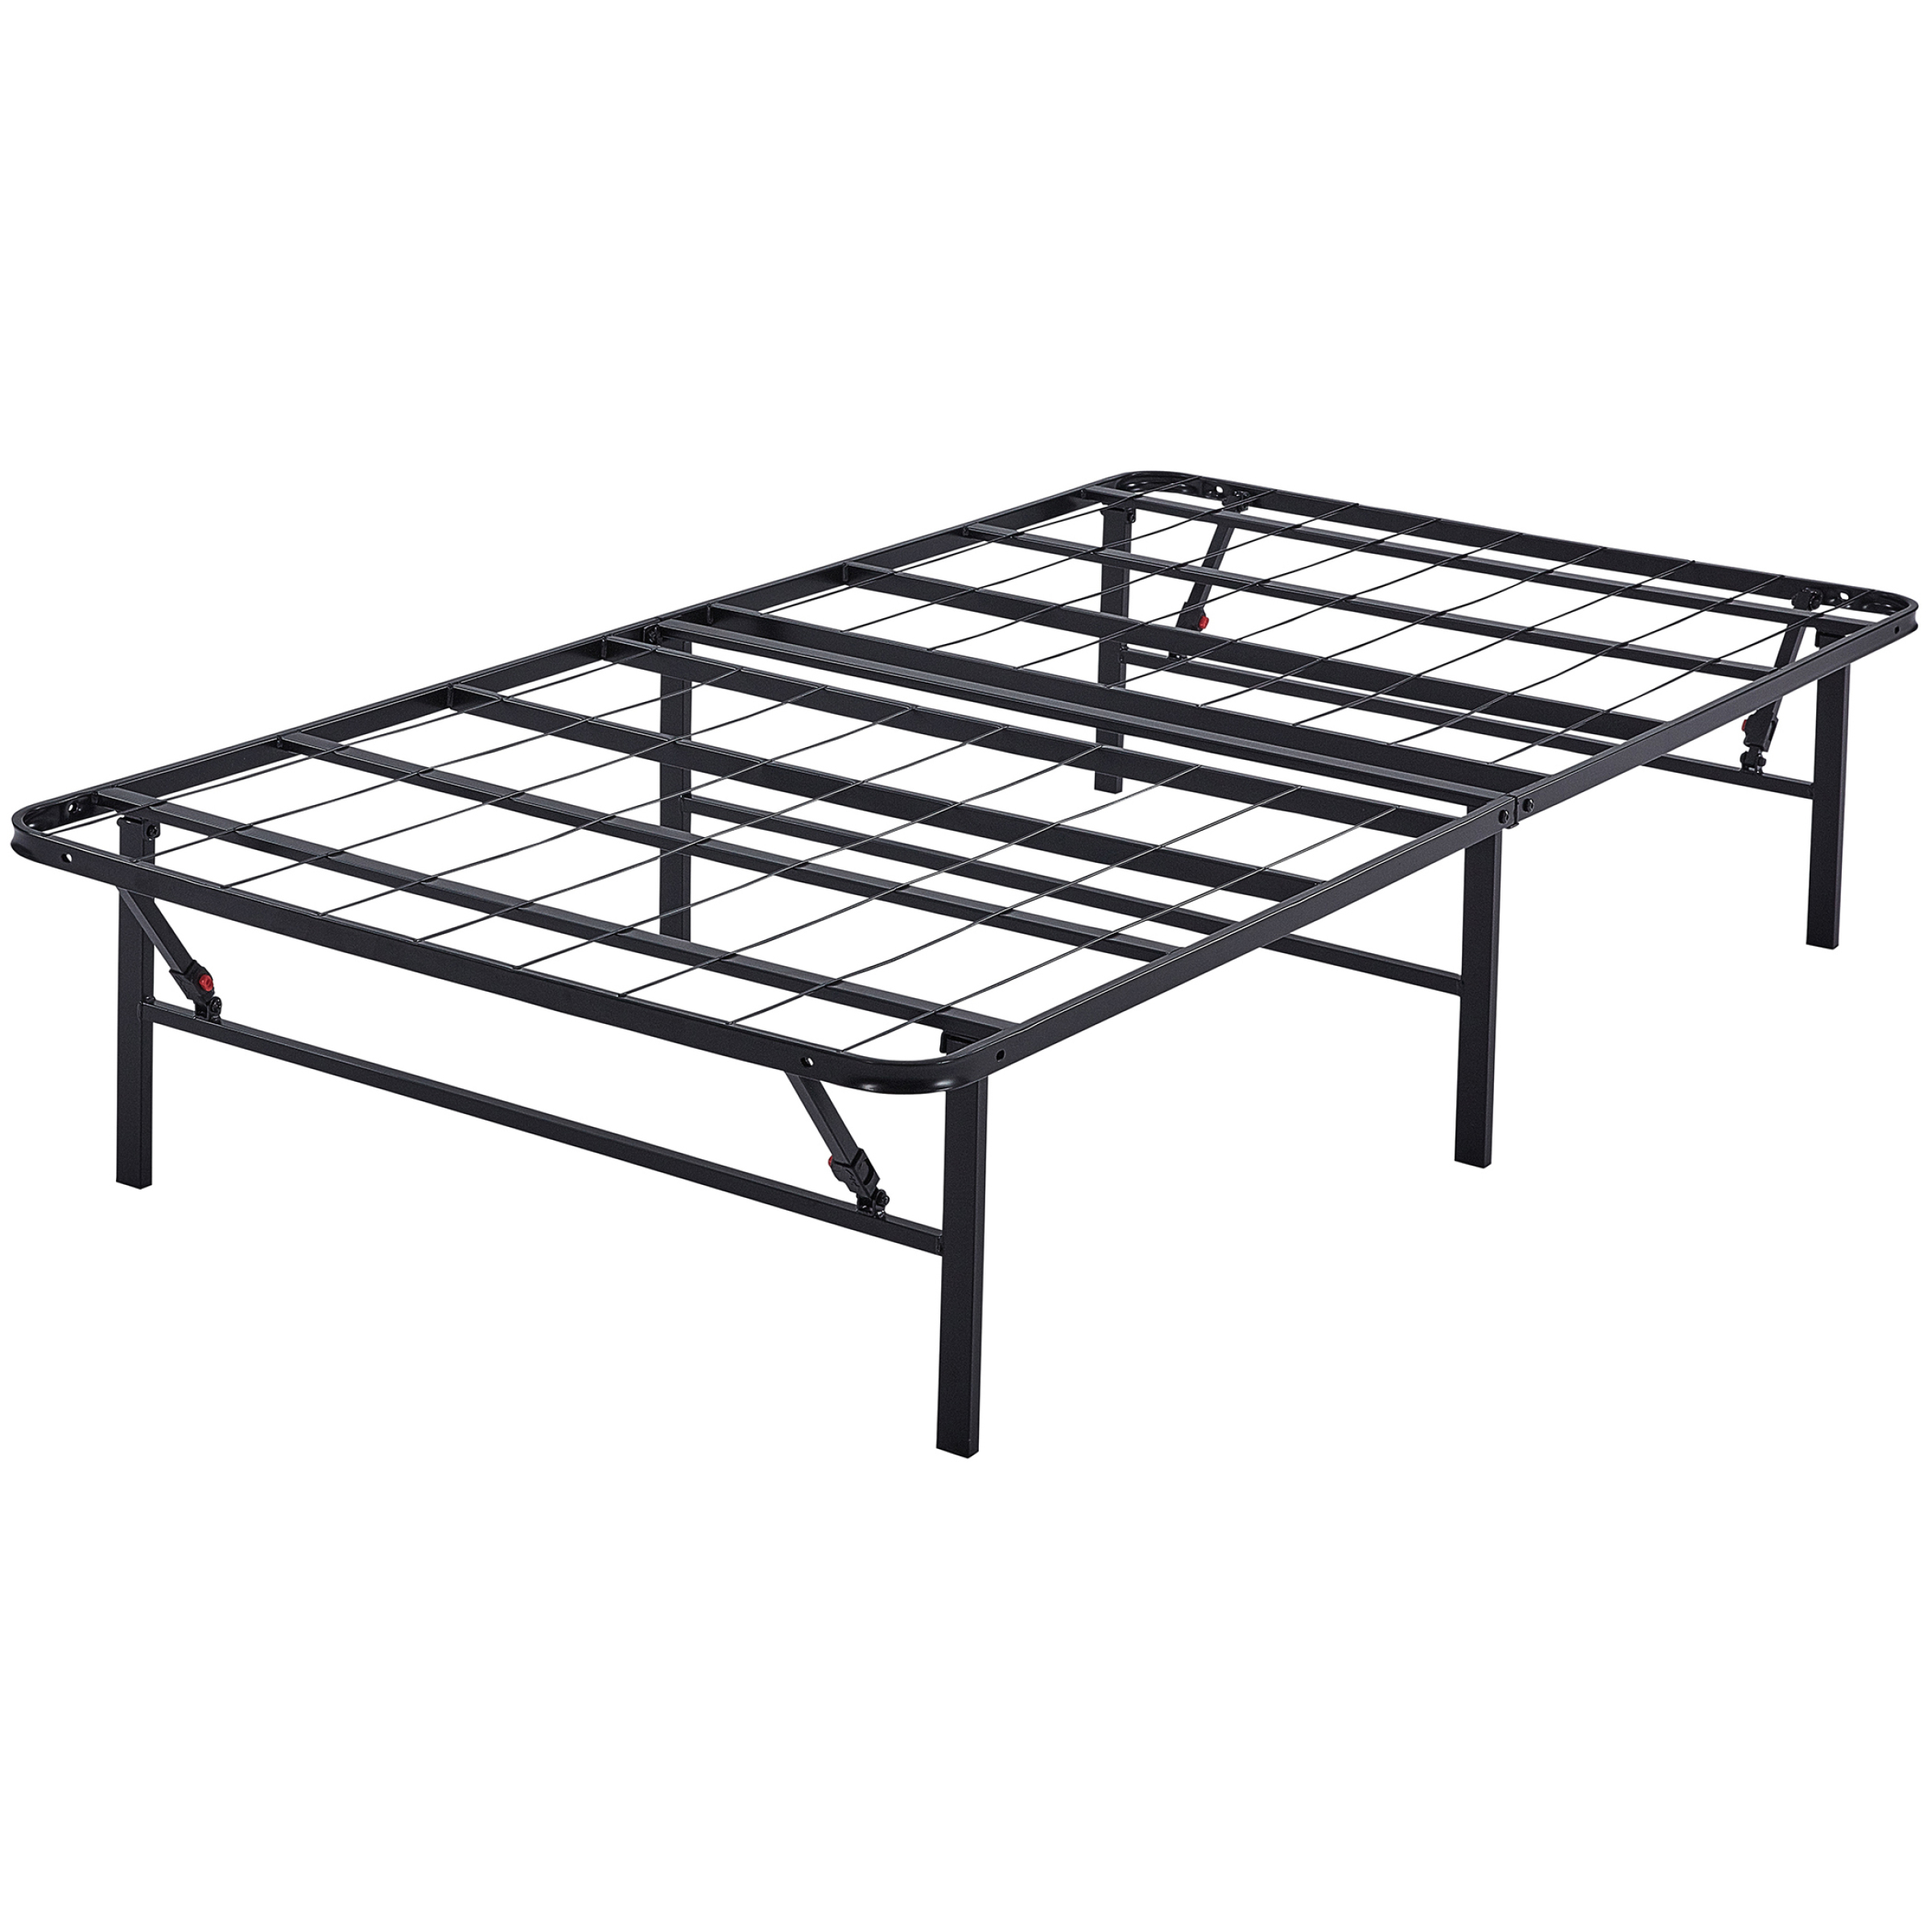 "Mainstays High Profile Foldable Steel 14"" Bed Frame, Powder-coated Steel"